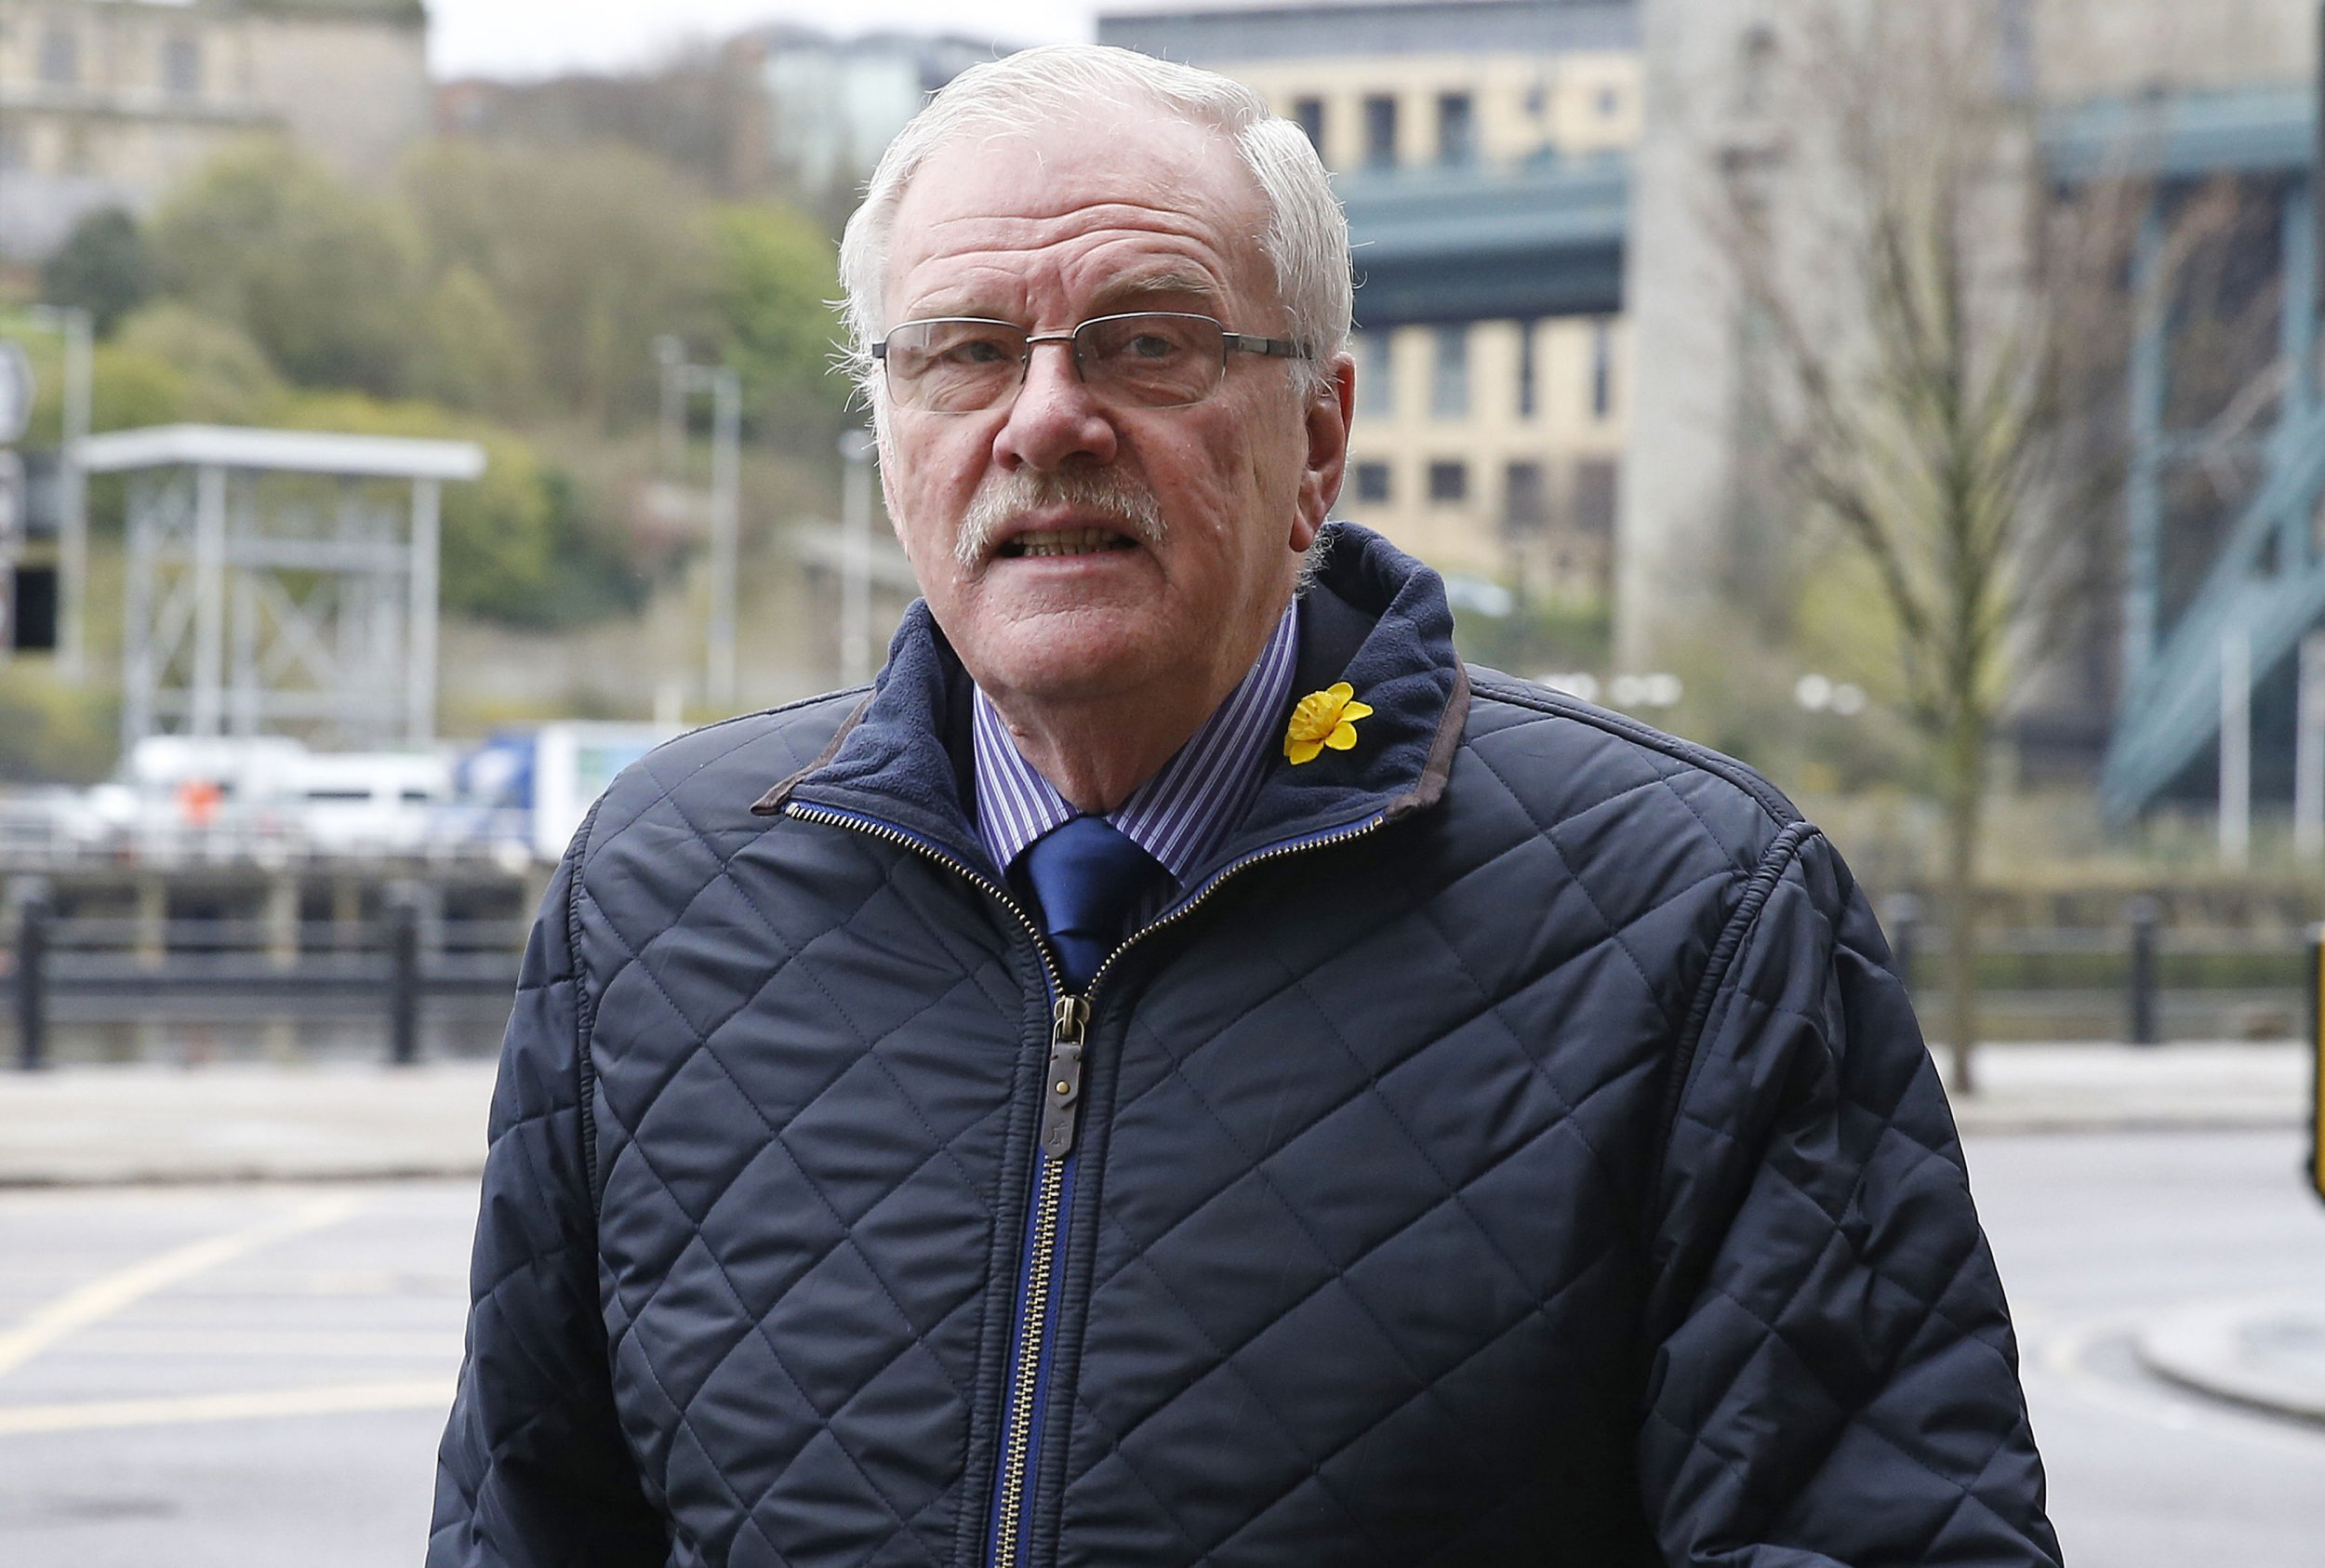 Colin Gregg, 74, arrives at Newcastle Crown Court where he denies 26 indecent assault charges dating from the 1960s to the 1990s, relating to nine complainants. Greggs founder PA